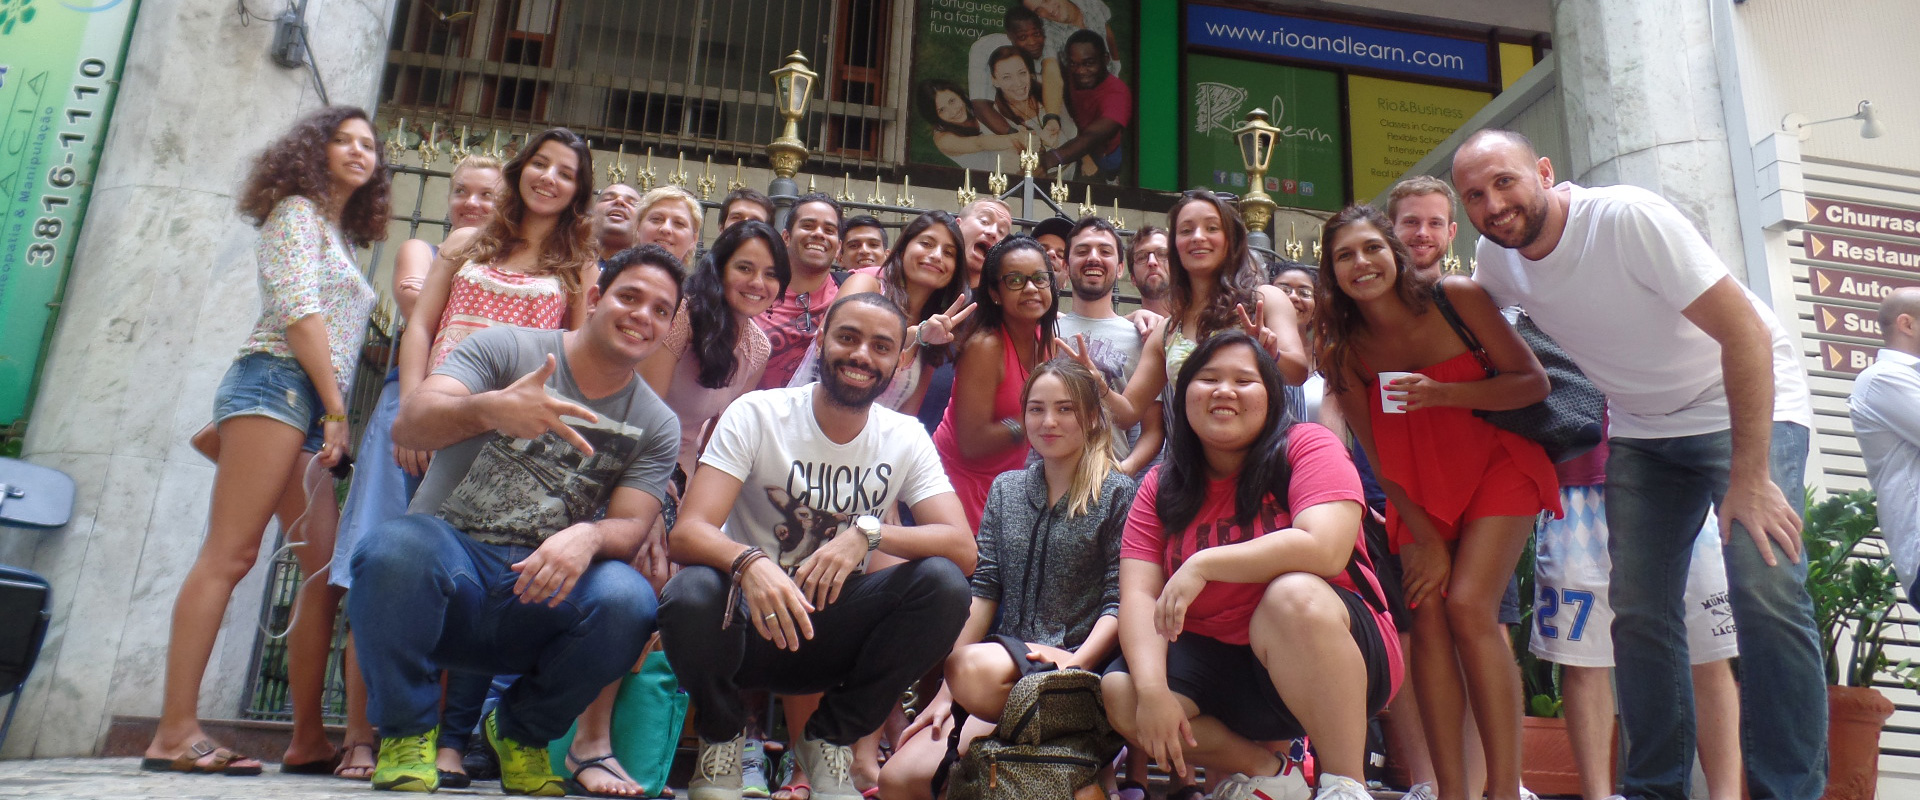 Students at Rio & Learn Portuguese Language School in Brazil